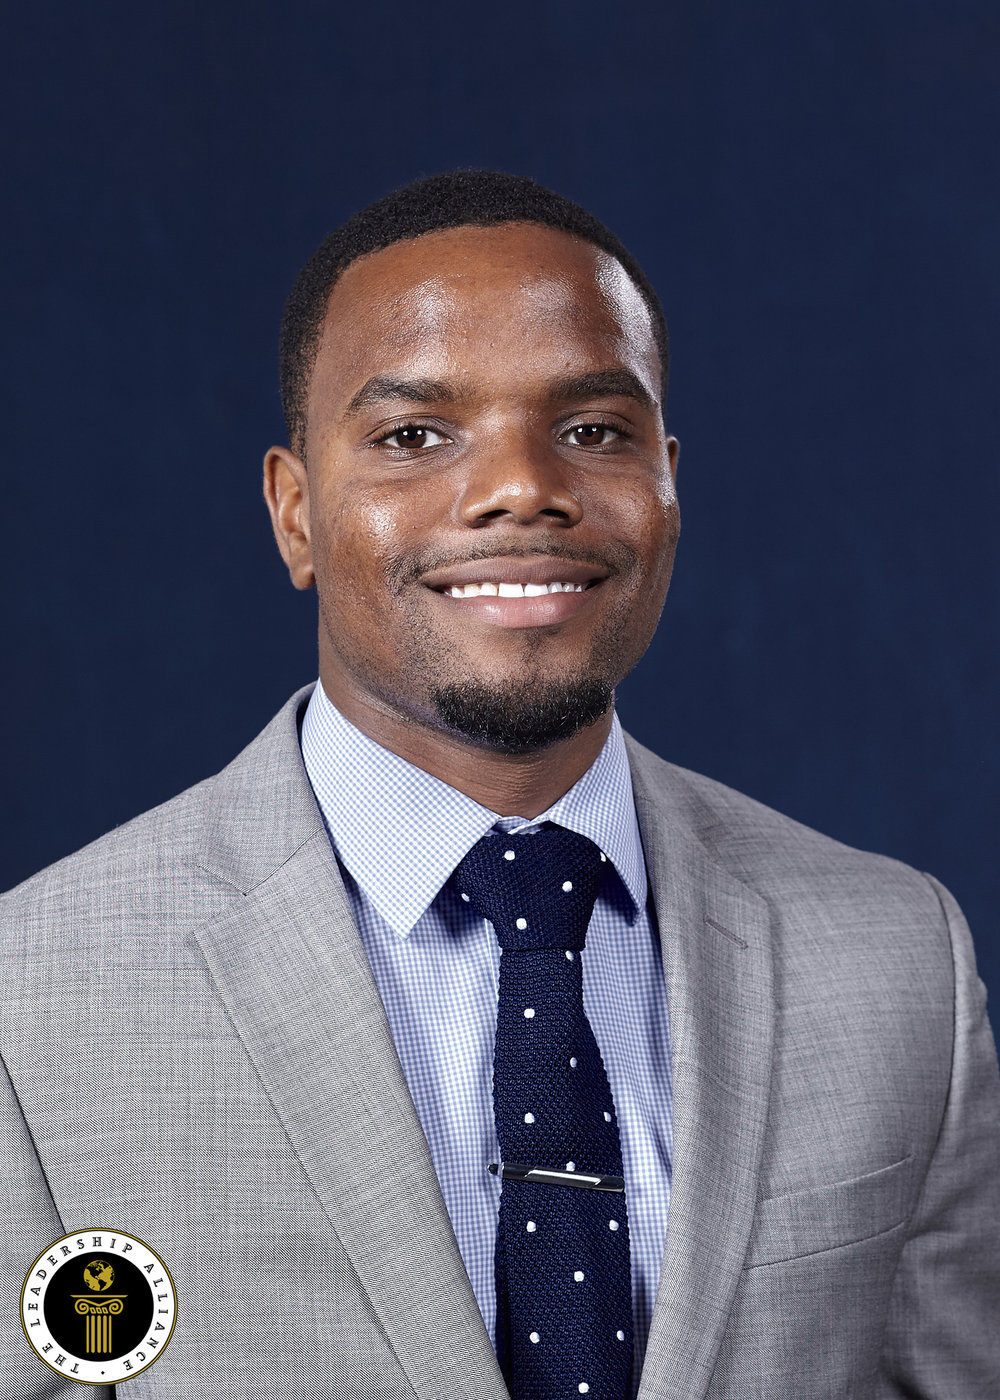 Phillip Thomas - Role: Board Member and MentorMy name is Phillip Thomas and I am from Durham, North Carolina. I received my B.S. in Biology from North Carolina Agricultural and Technical State University in Greensboro, North Carolina. After College, I decided to go straight into graduate school, and I made the tough decision to leave North Carolina and attend NYU School of Medicine. I am currently a fourth year graduate student in the lab of Dr. Susan K. Logan studying male infertility.